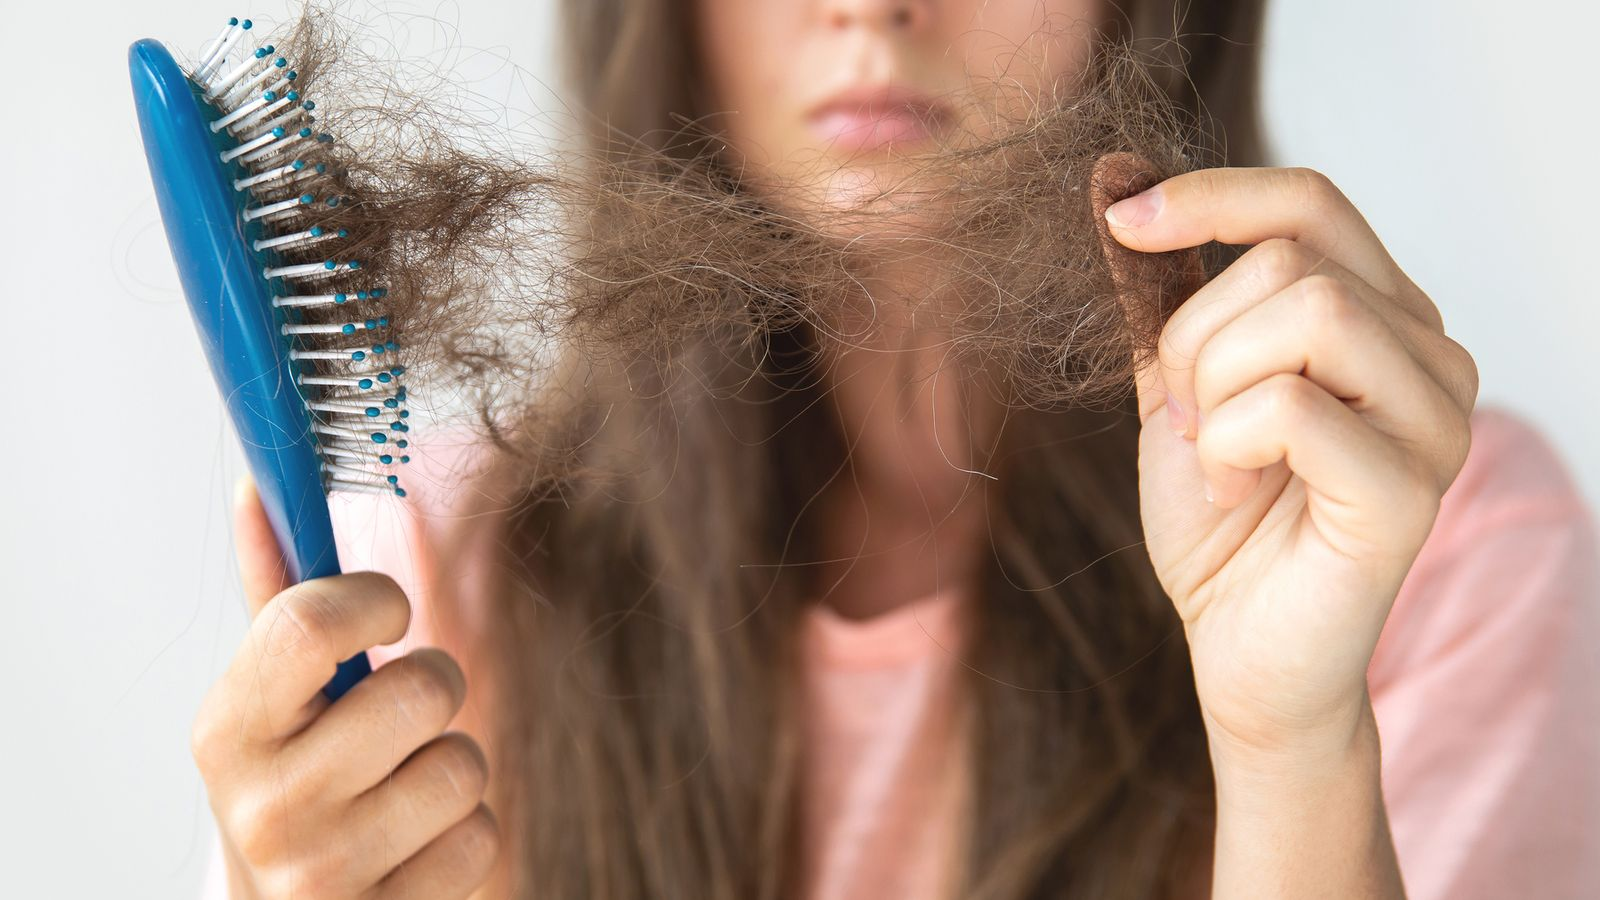 COVID-19: Hair loss identified as long-term symptom of coronavirus - with women most at risk, study says